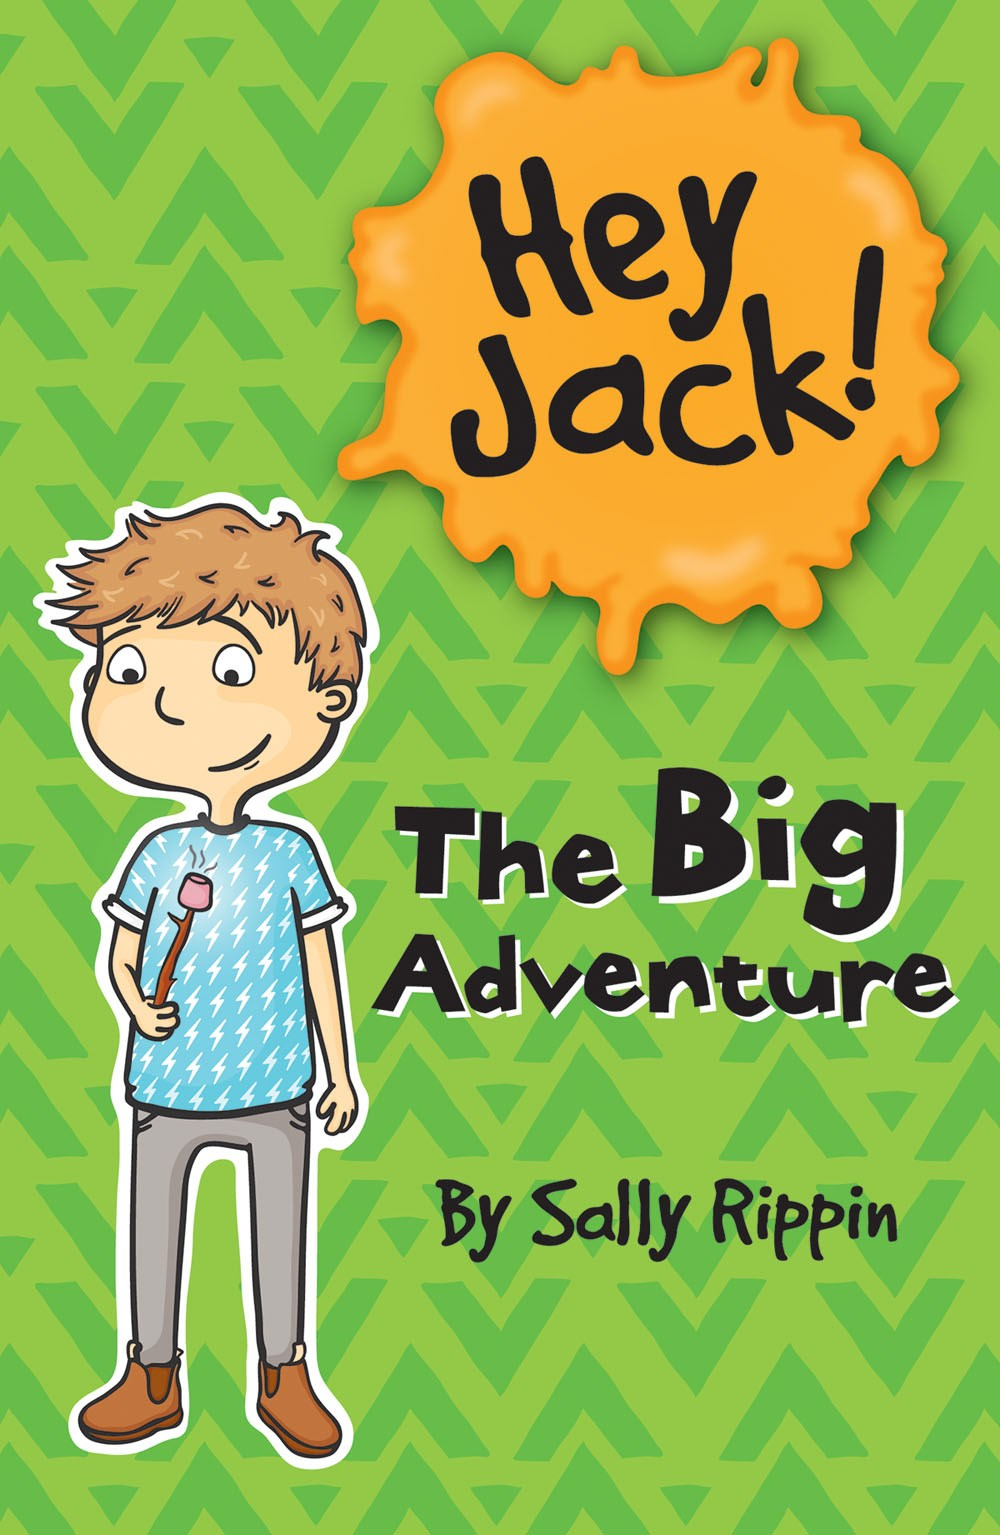 Hey Jack! The Big Adventure